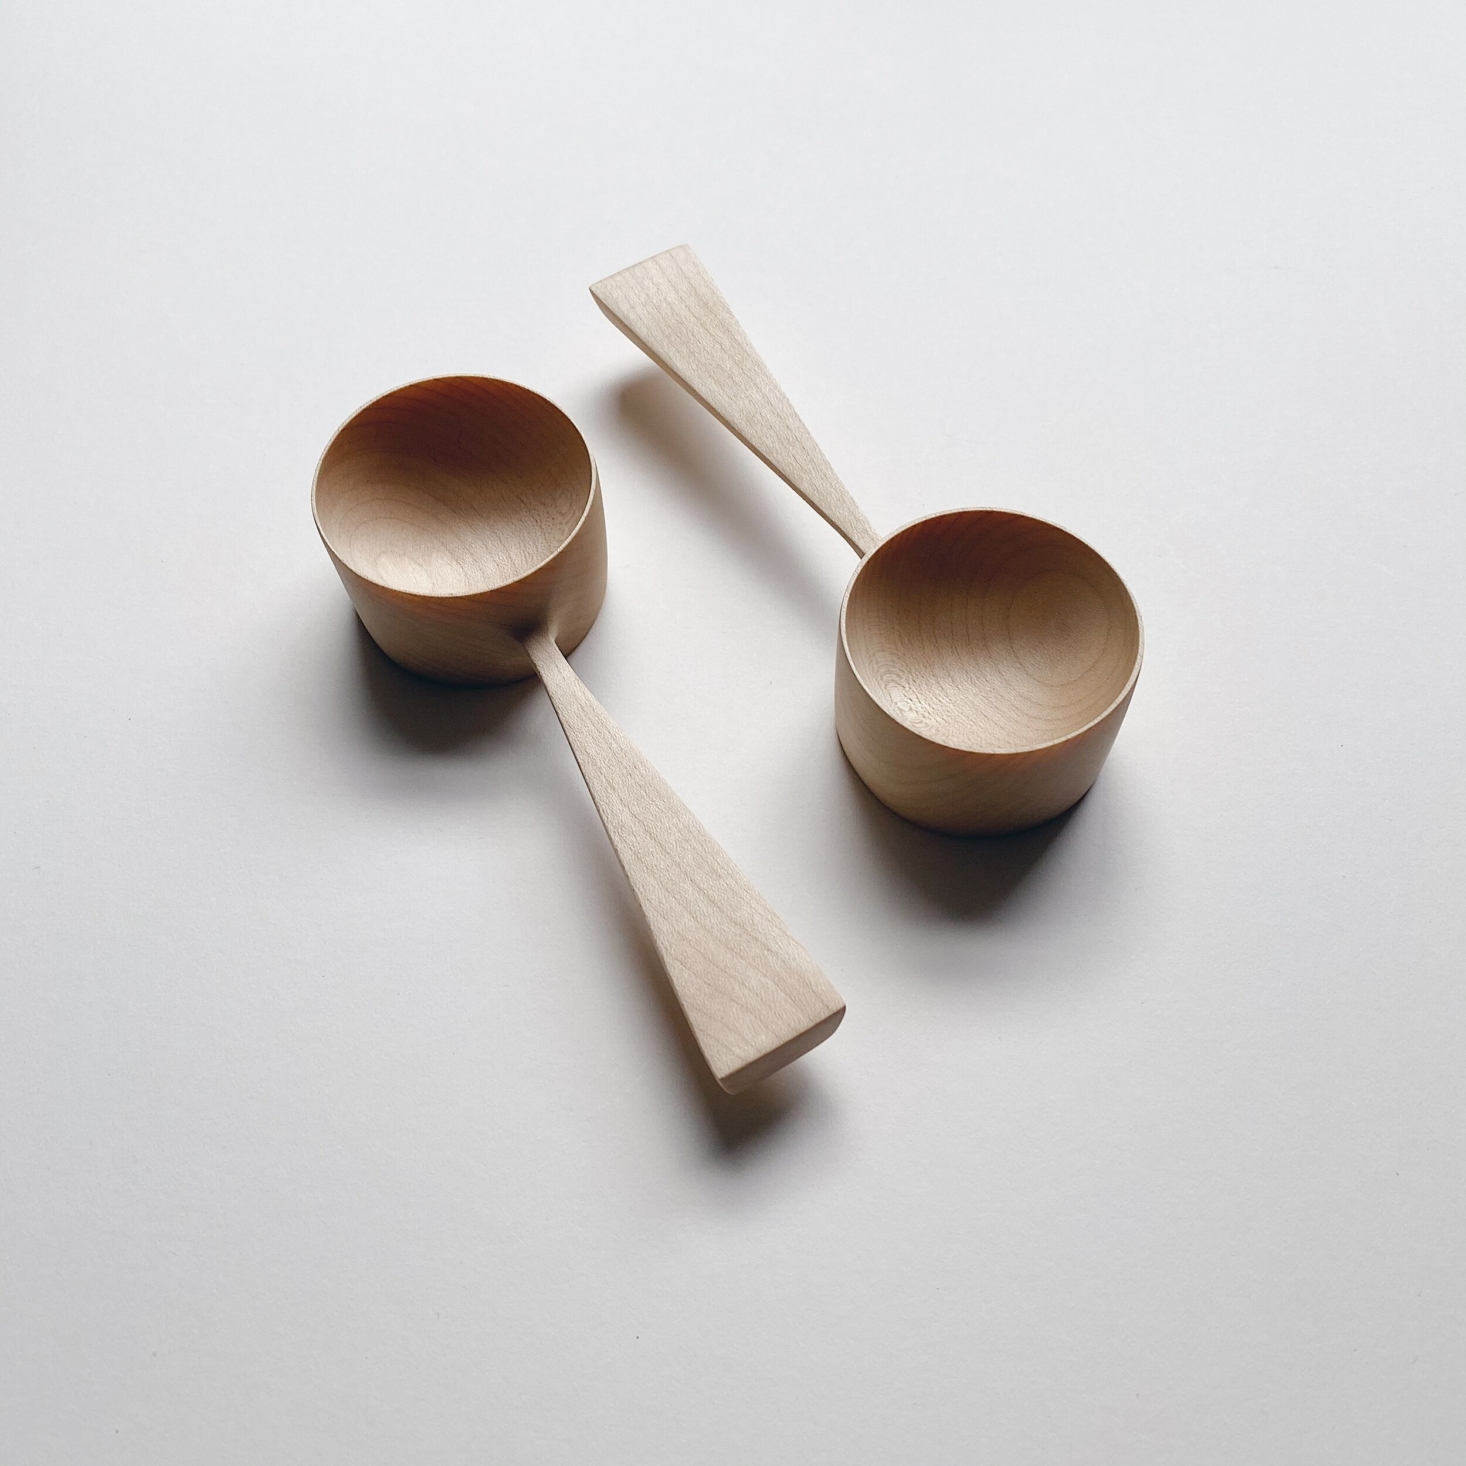 The Blonde Chunky Sycamore Scoop from celebrated UK woodworker Luke Hope is £0.